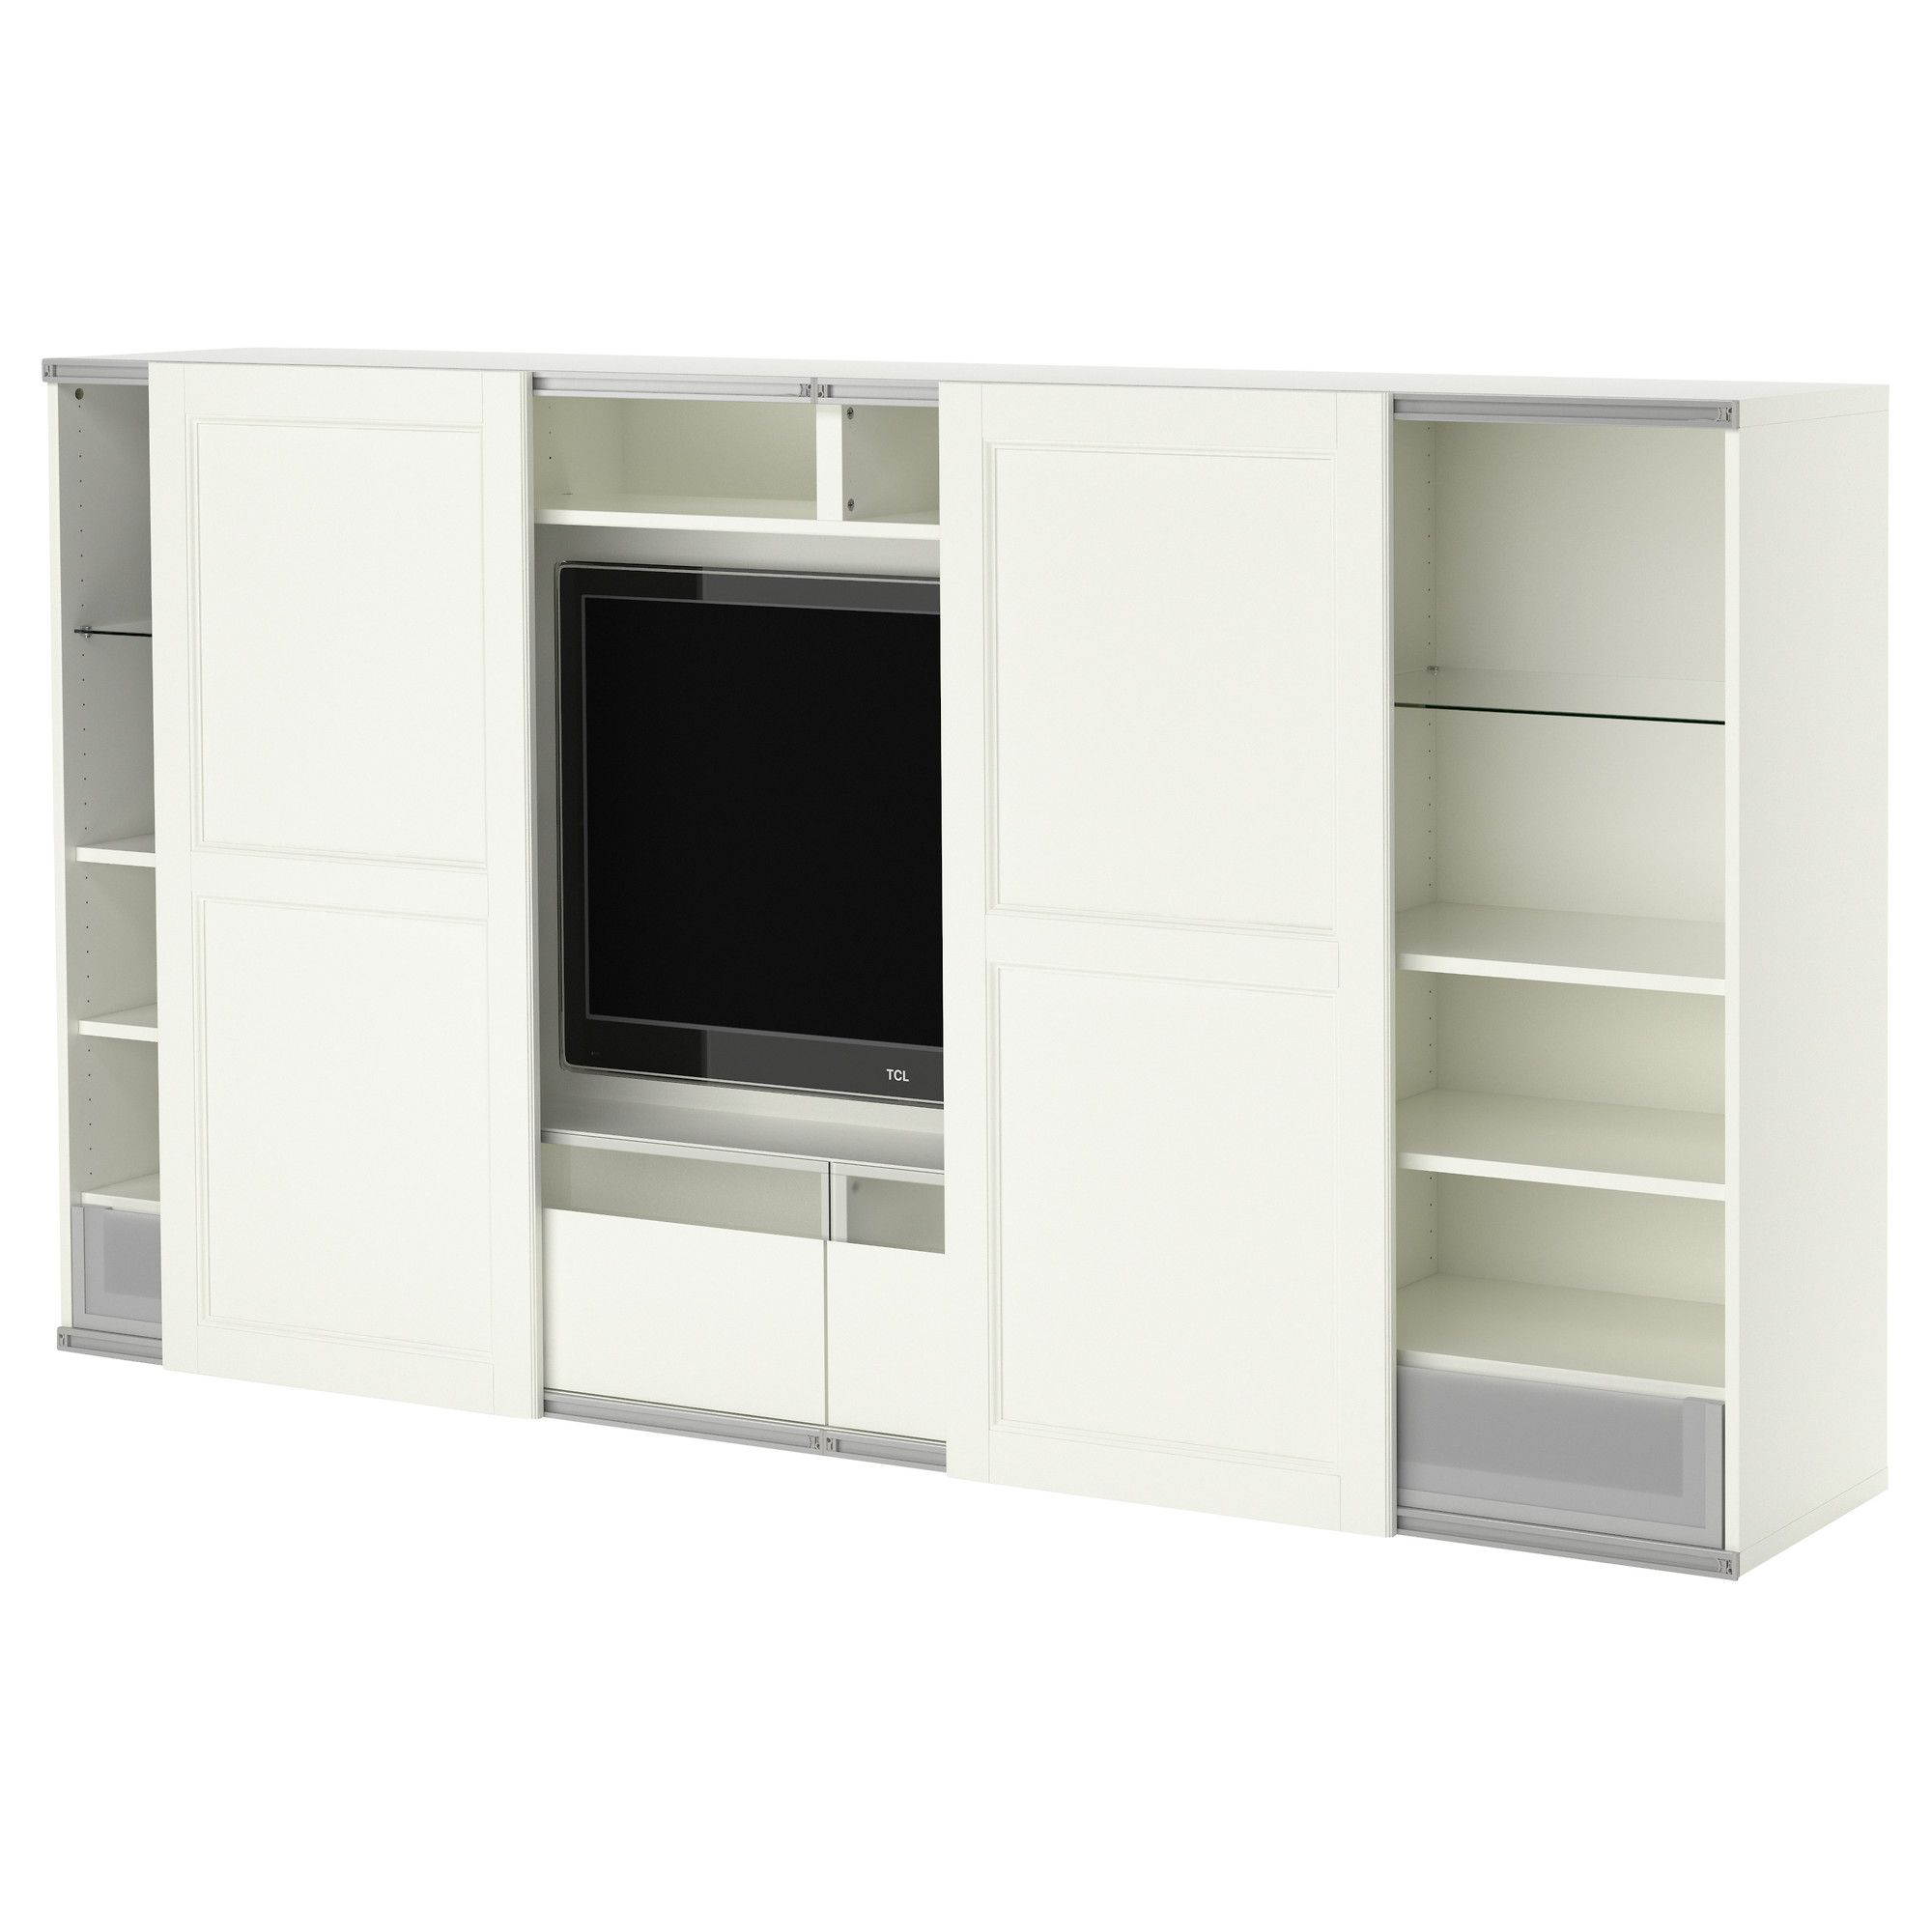 best tv storage combo with sliding doors ikea home ideas pinterest wohnzimmer. Black Bedroom Furniture Sets. Home Design Ideas